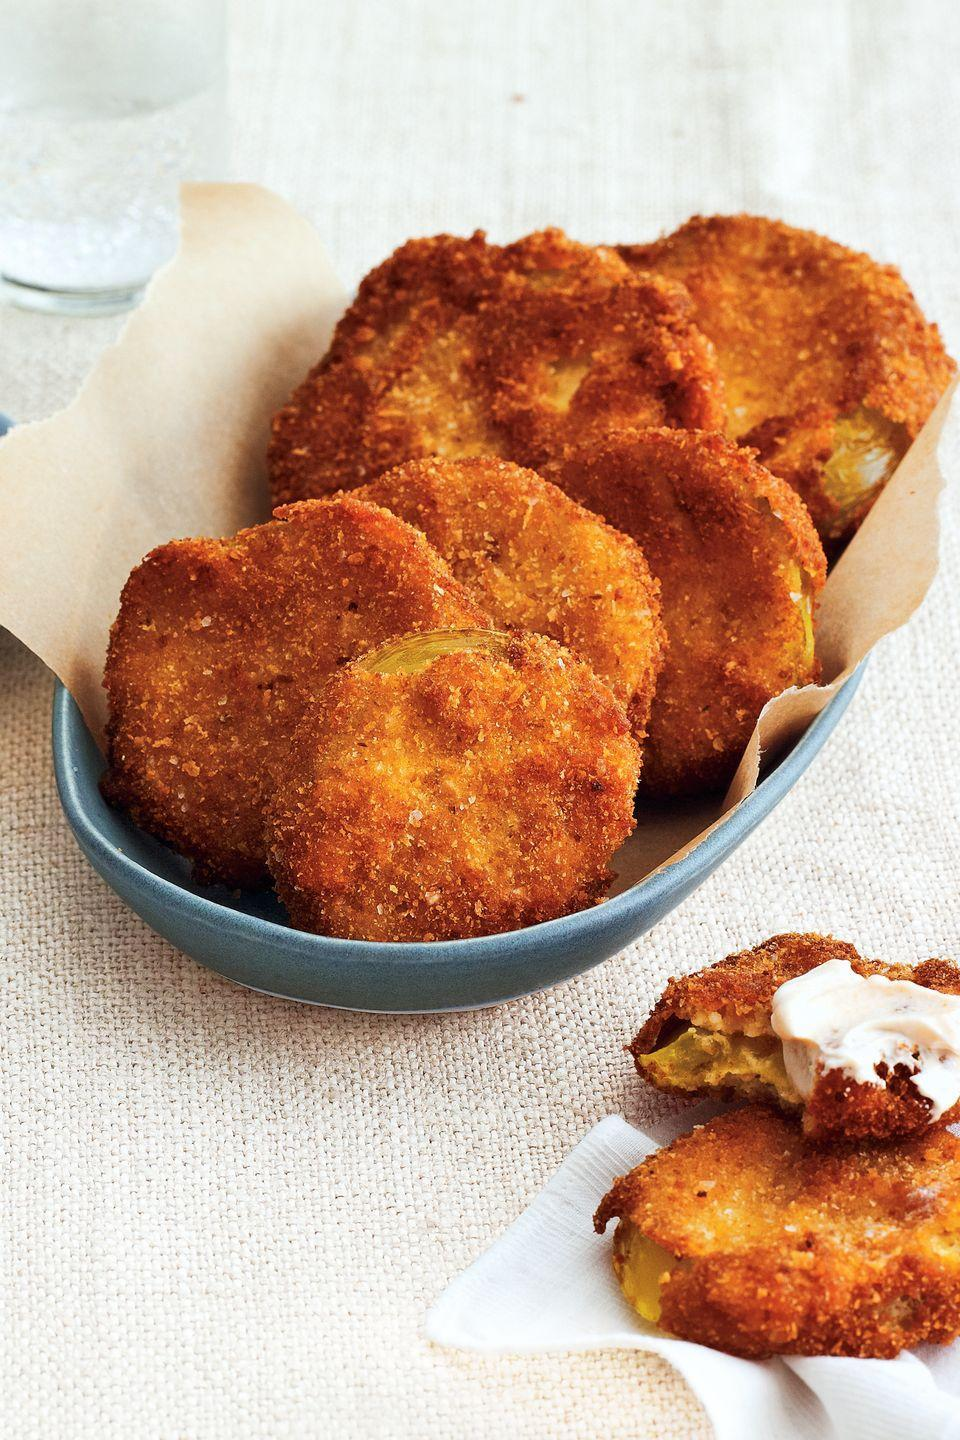 "<p>Similar to the classic fried green tomatoes you love, these juicy bites are kicked up a notch with a cumin-laced dip.</p><p><strong><a href=""https://www.countryliving.com/food-drinks/recipes/a4262/fried-tomatillos-creamy-cumin-dip-recipe-clx1013/"" rel=""nofollow noopener"" target=""_blank"" data-ylk=""slk:Get the recipe"" class=""link rapid-noclick-resp"">Get the recipe</a>.</strong></p>"